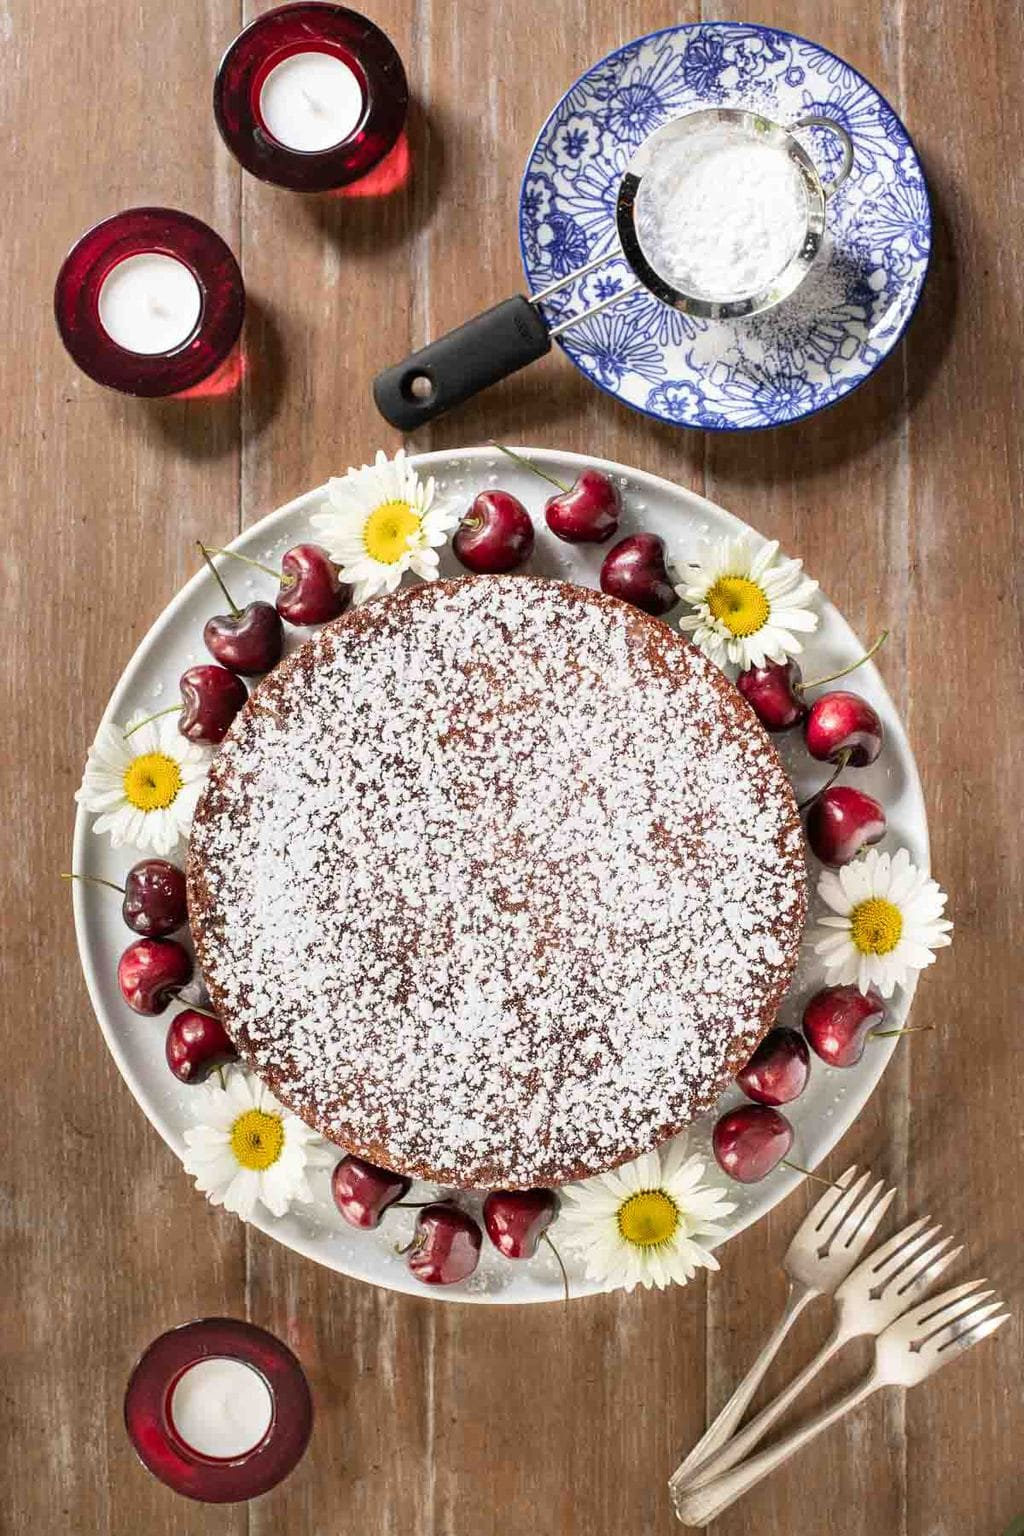 Overhead vertical photo of a Ridiculously Easy Fresh Cherry Almond Cake garnished with fresh daisies and ripe cherries.